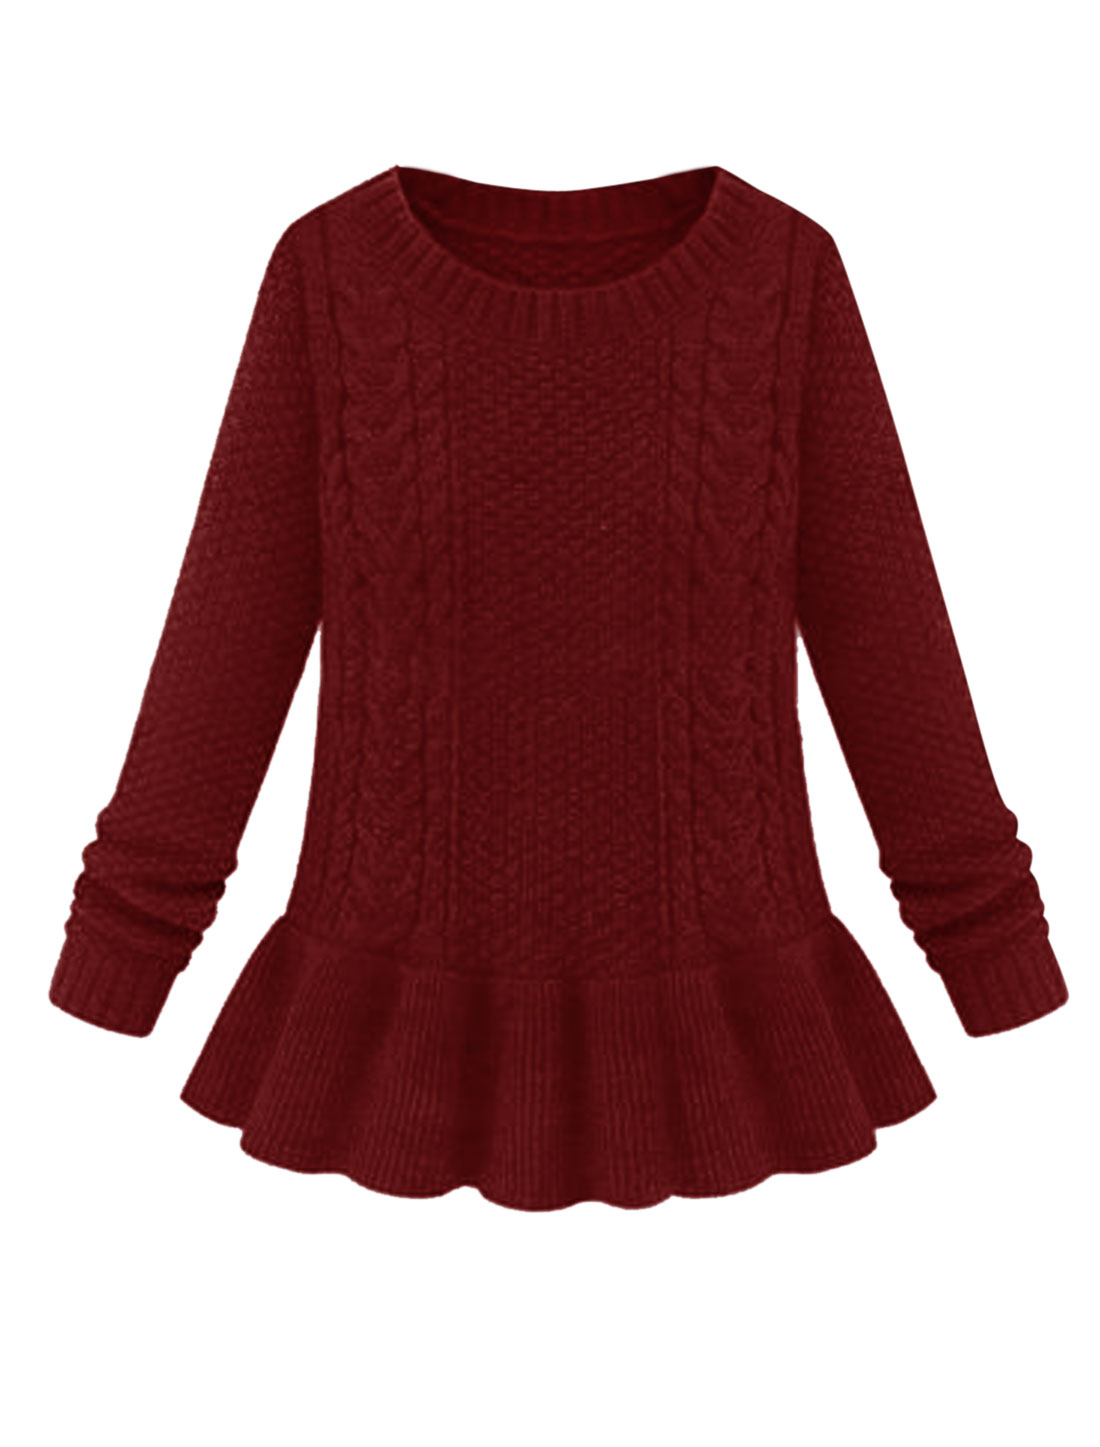 Lady Pullover Round Neck Fashionable Peplum Sweater Burgundy M